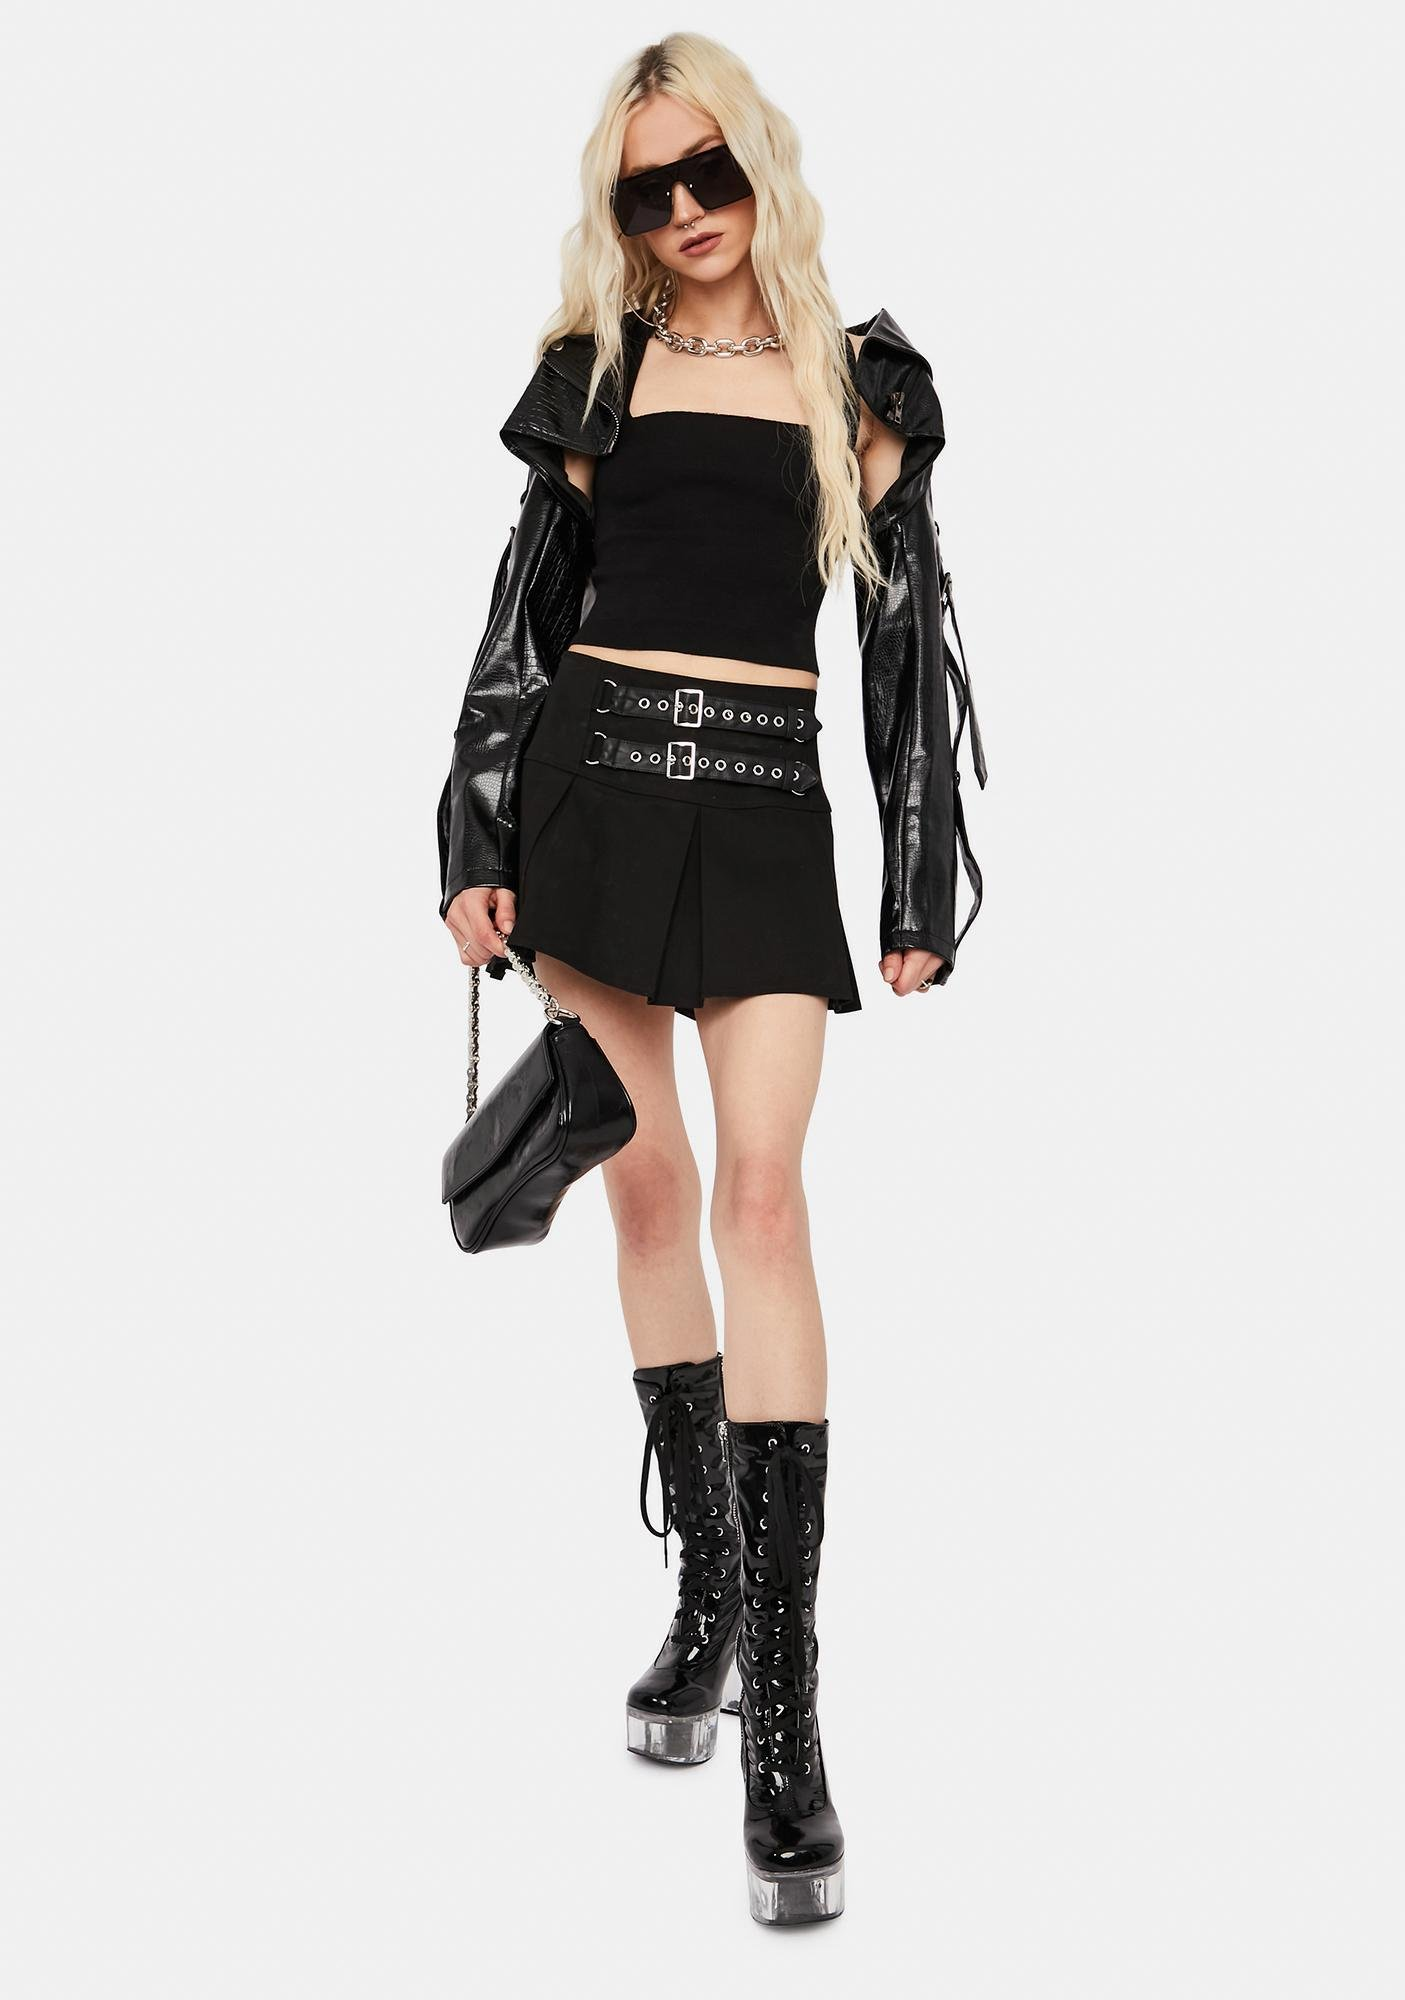 Almost Grown Lace Up Crop Top